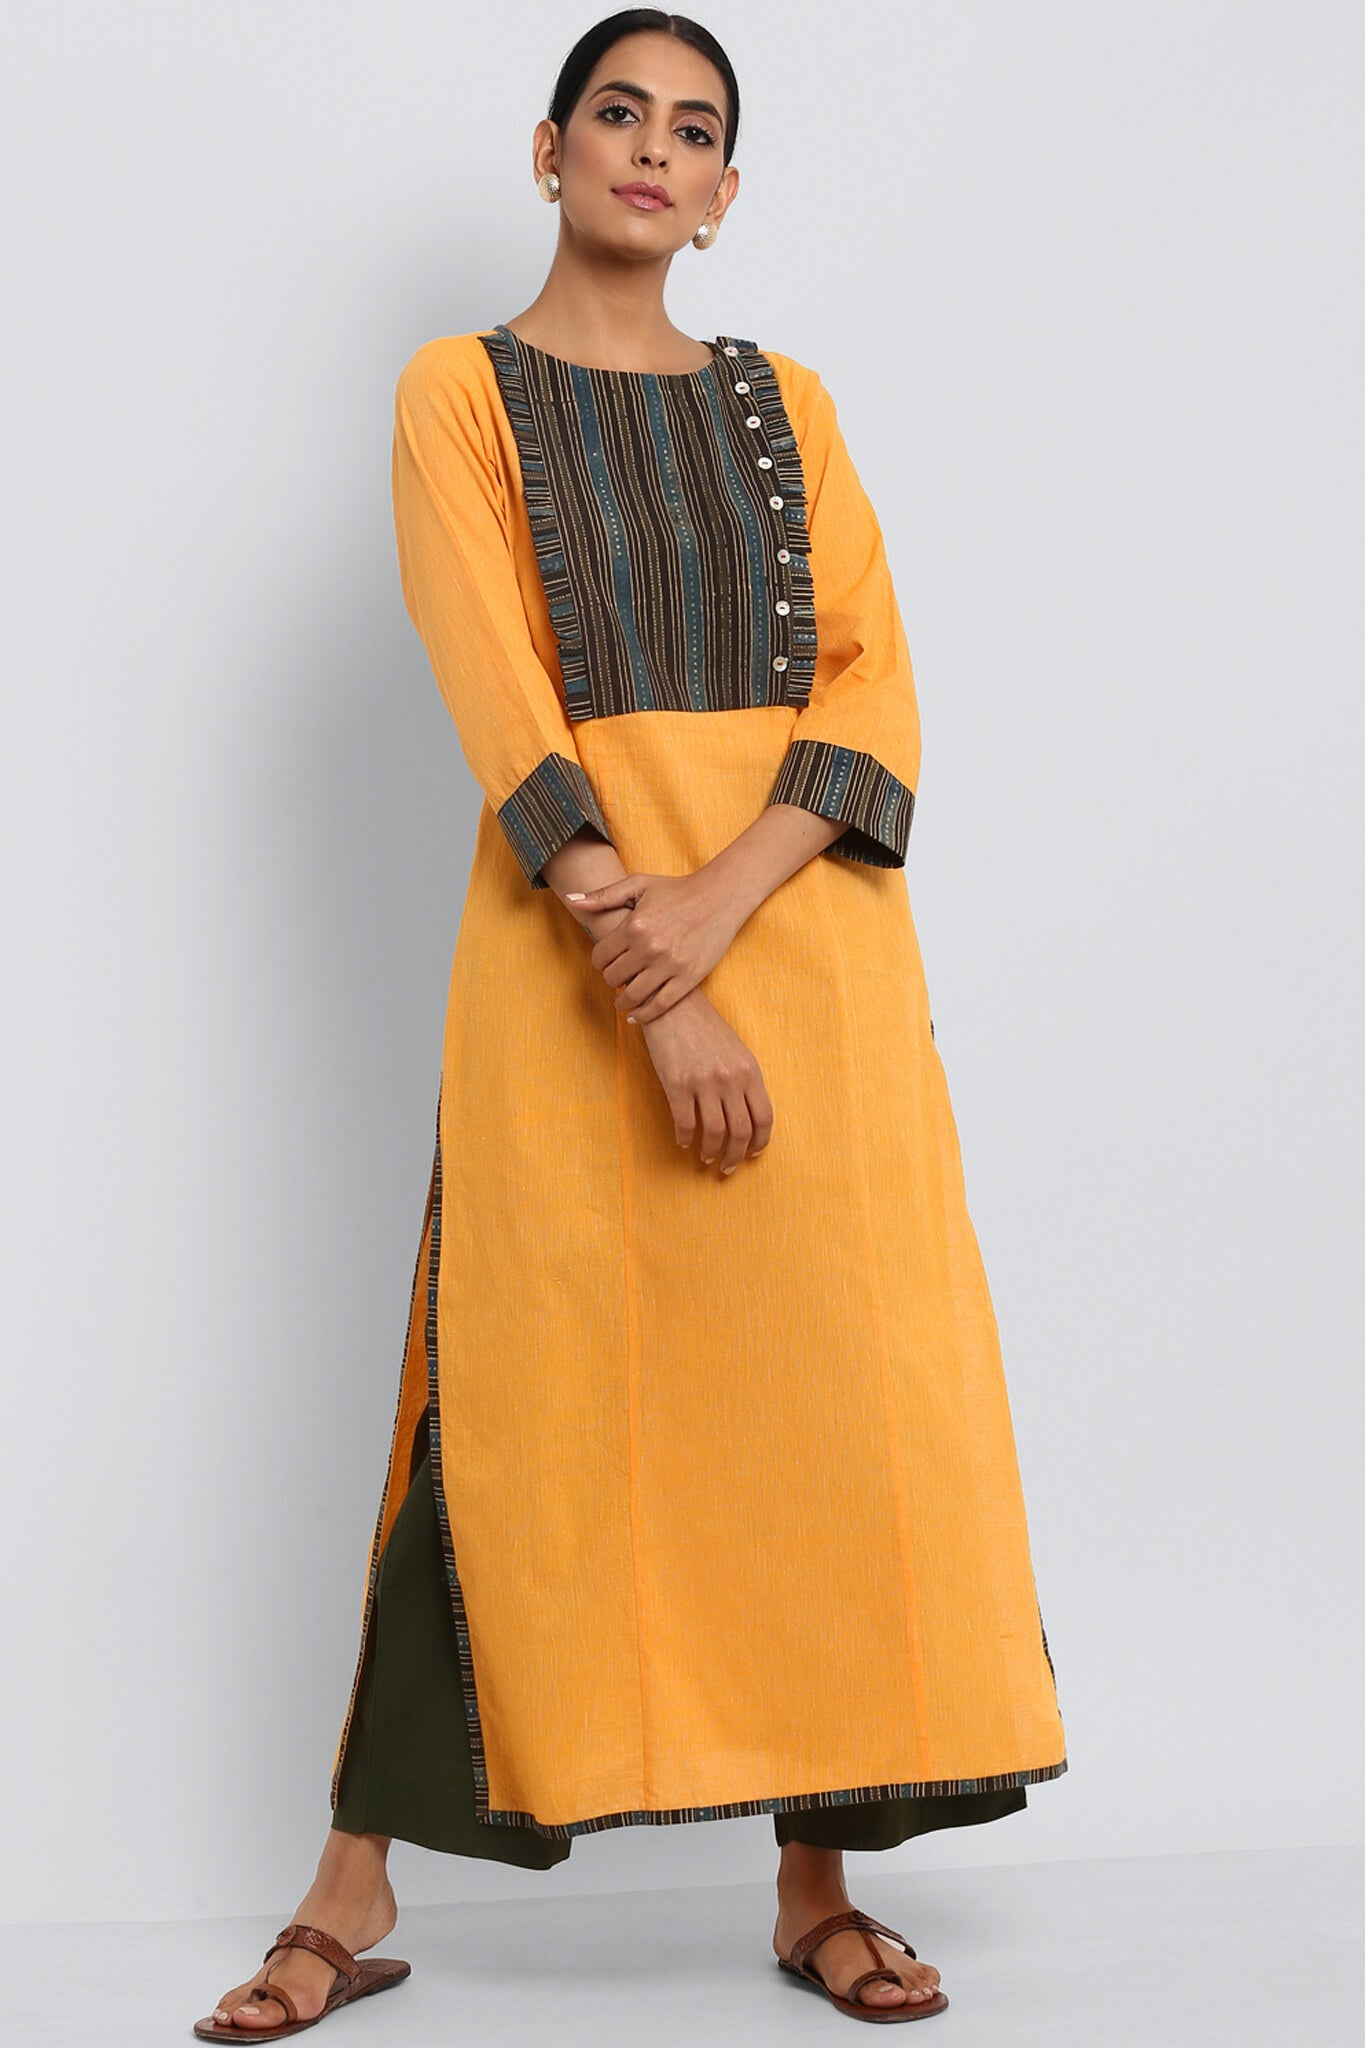 SIDE POTLI LONG KURTA - MARIGOLD & COFFEE